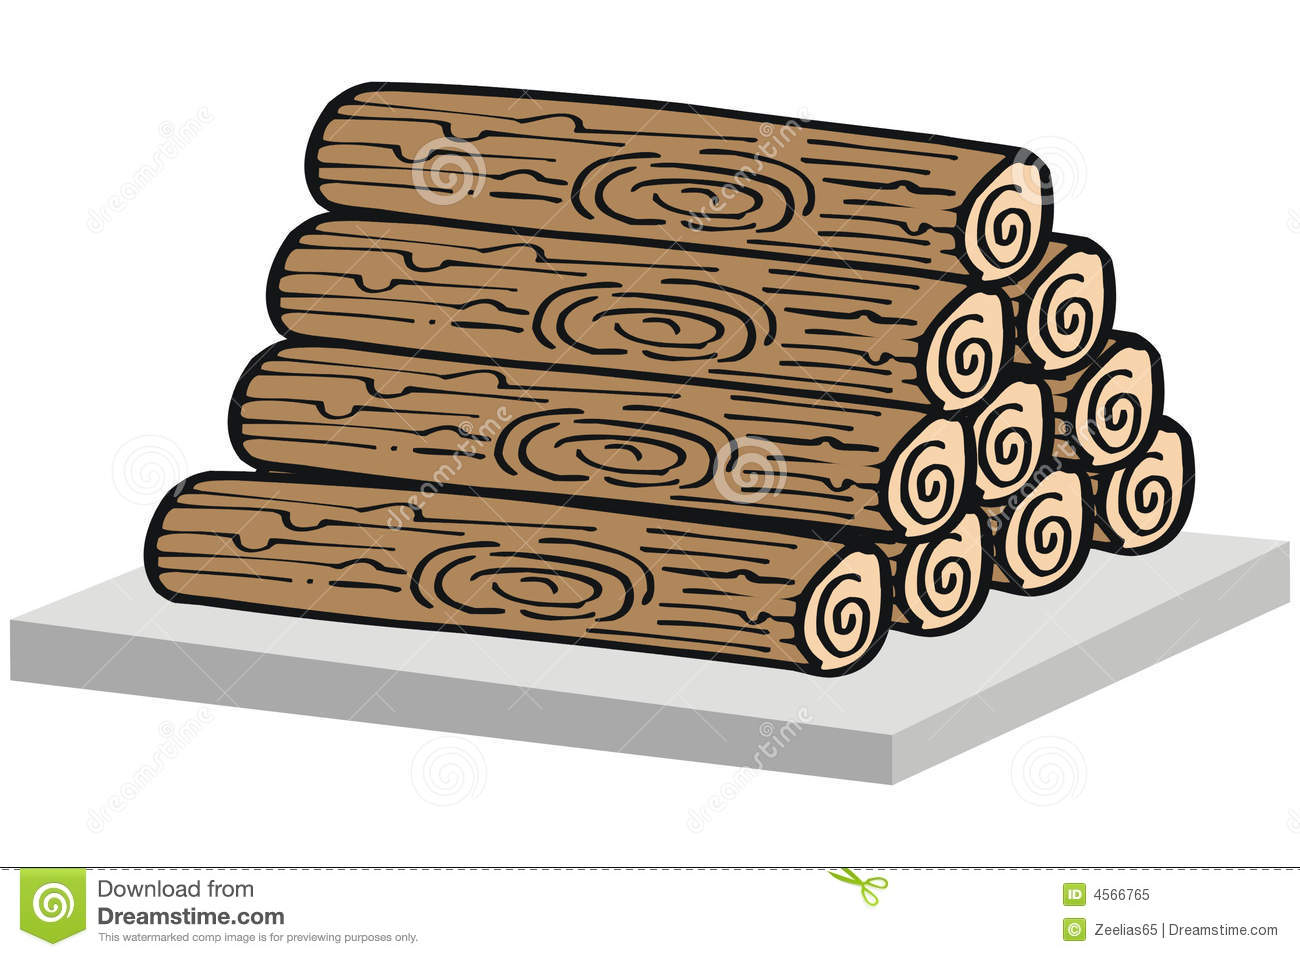 Timber Clip Art ~ Wood pile clipart suggest